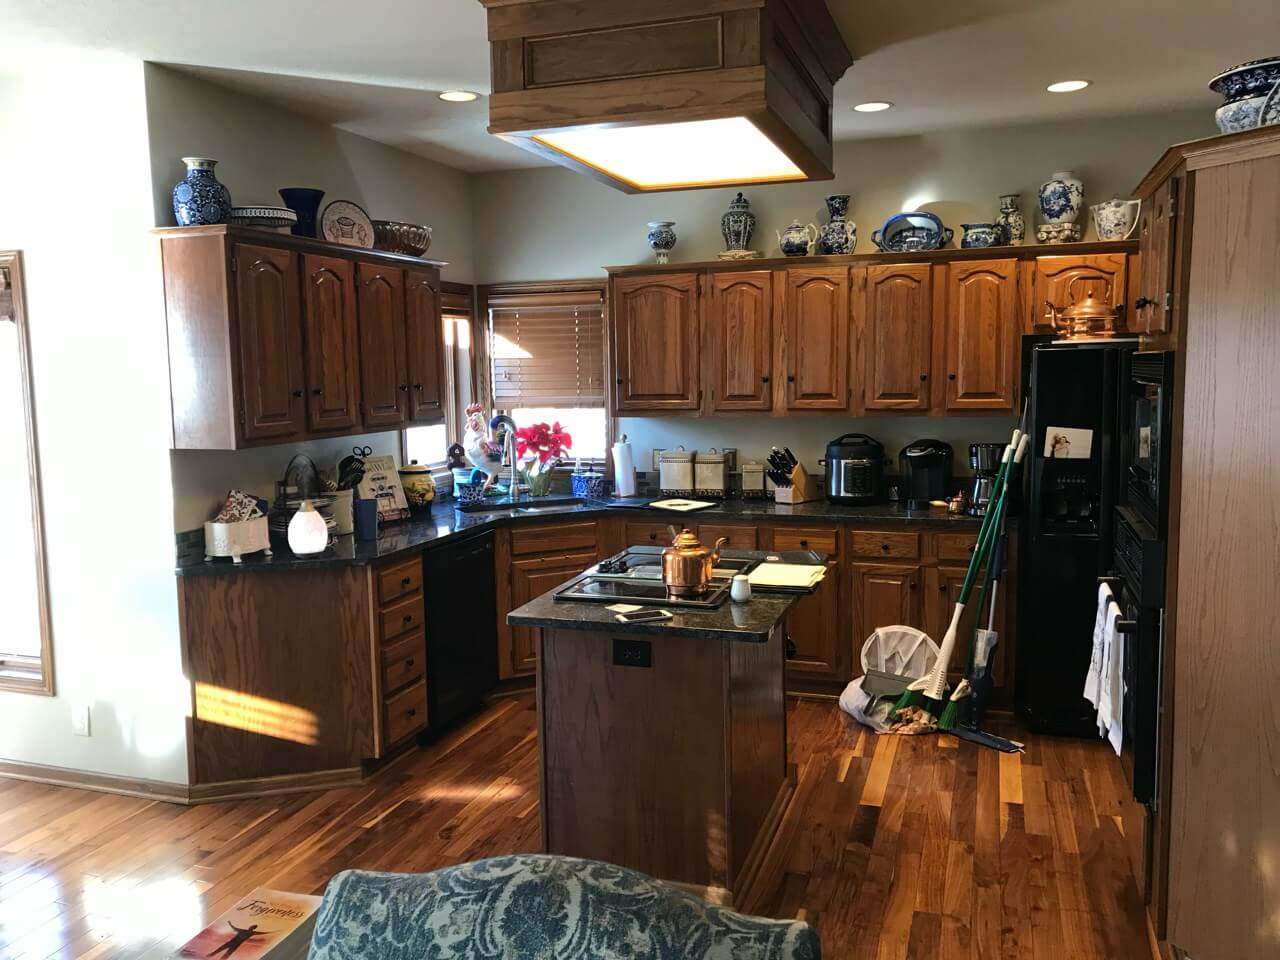 A sparkling new kitchen after a Cyclone remodel.